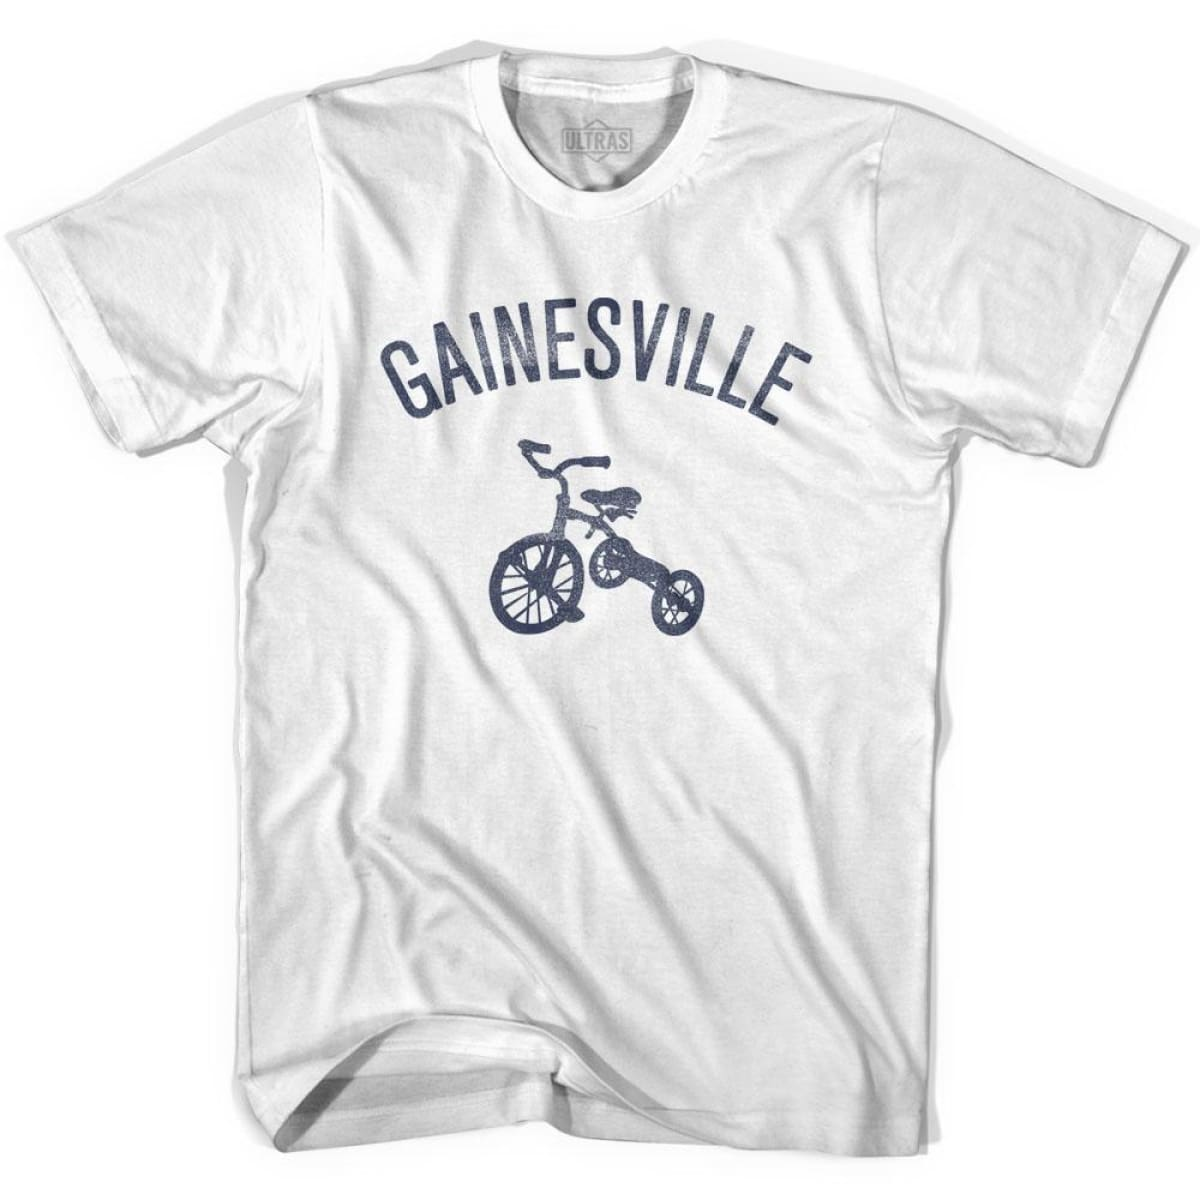 Gainesville City Tricycle Womens Cotton T-shirt - Tricycle City